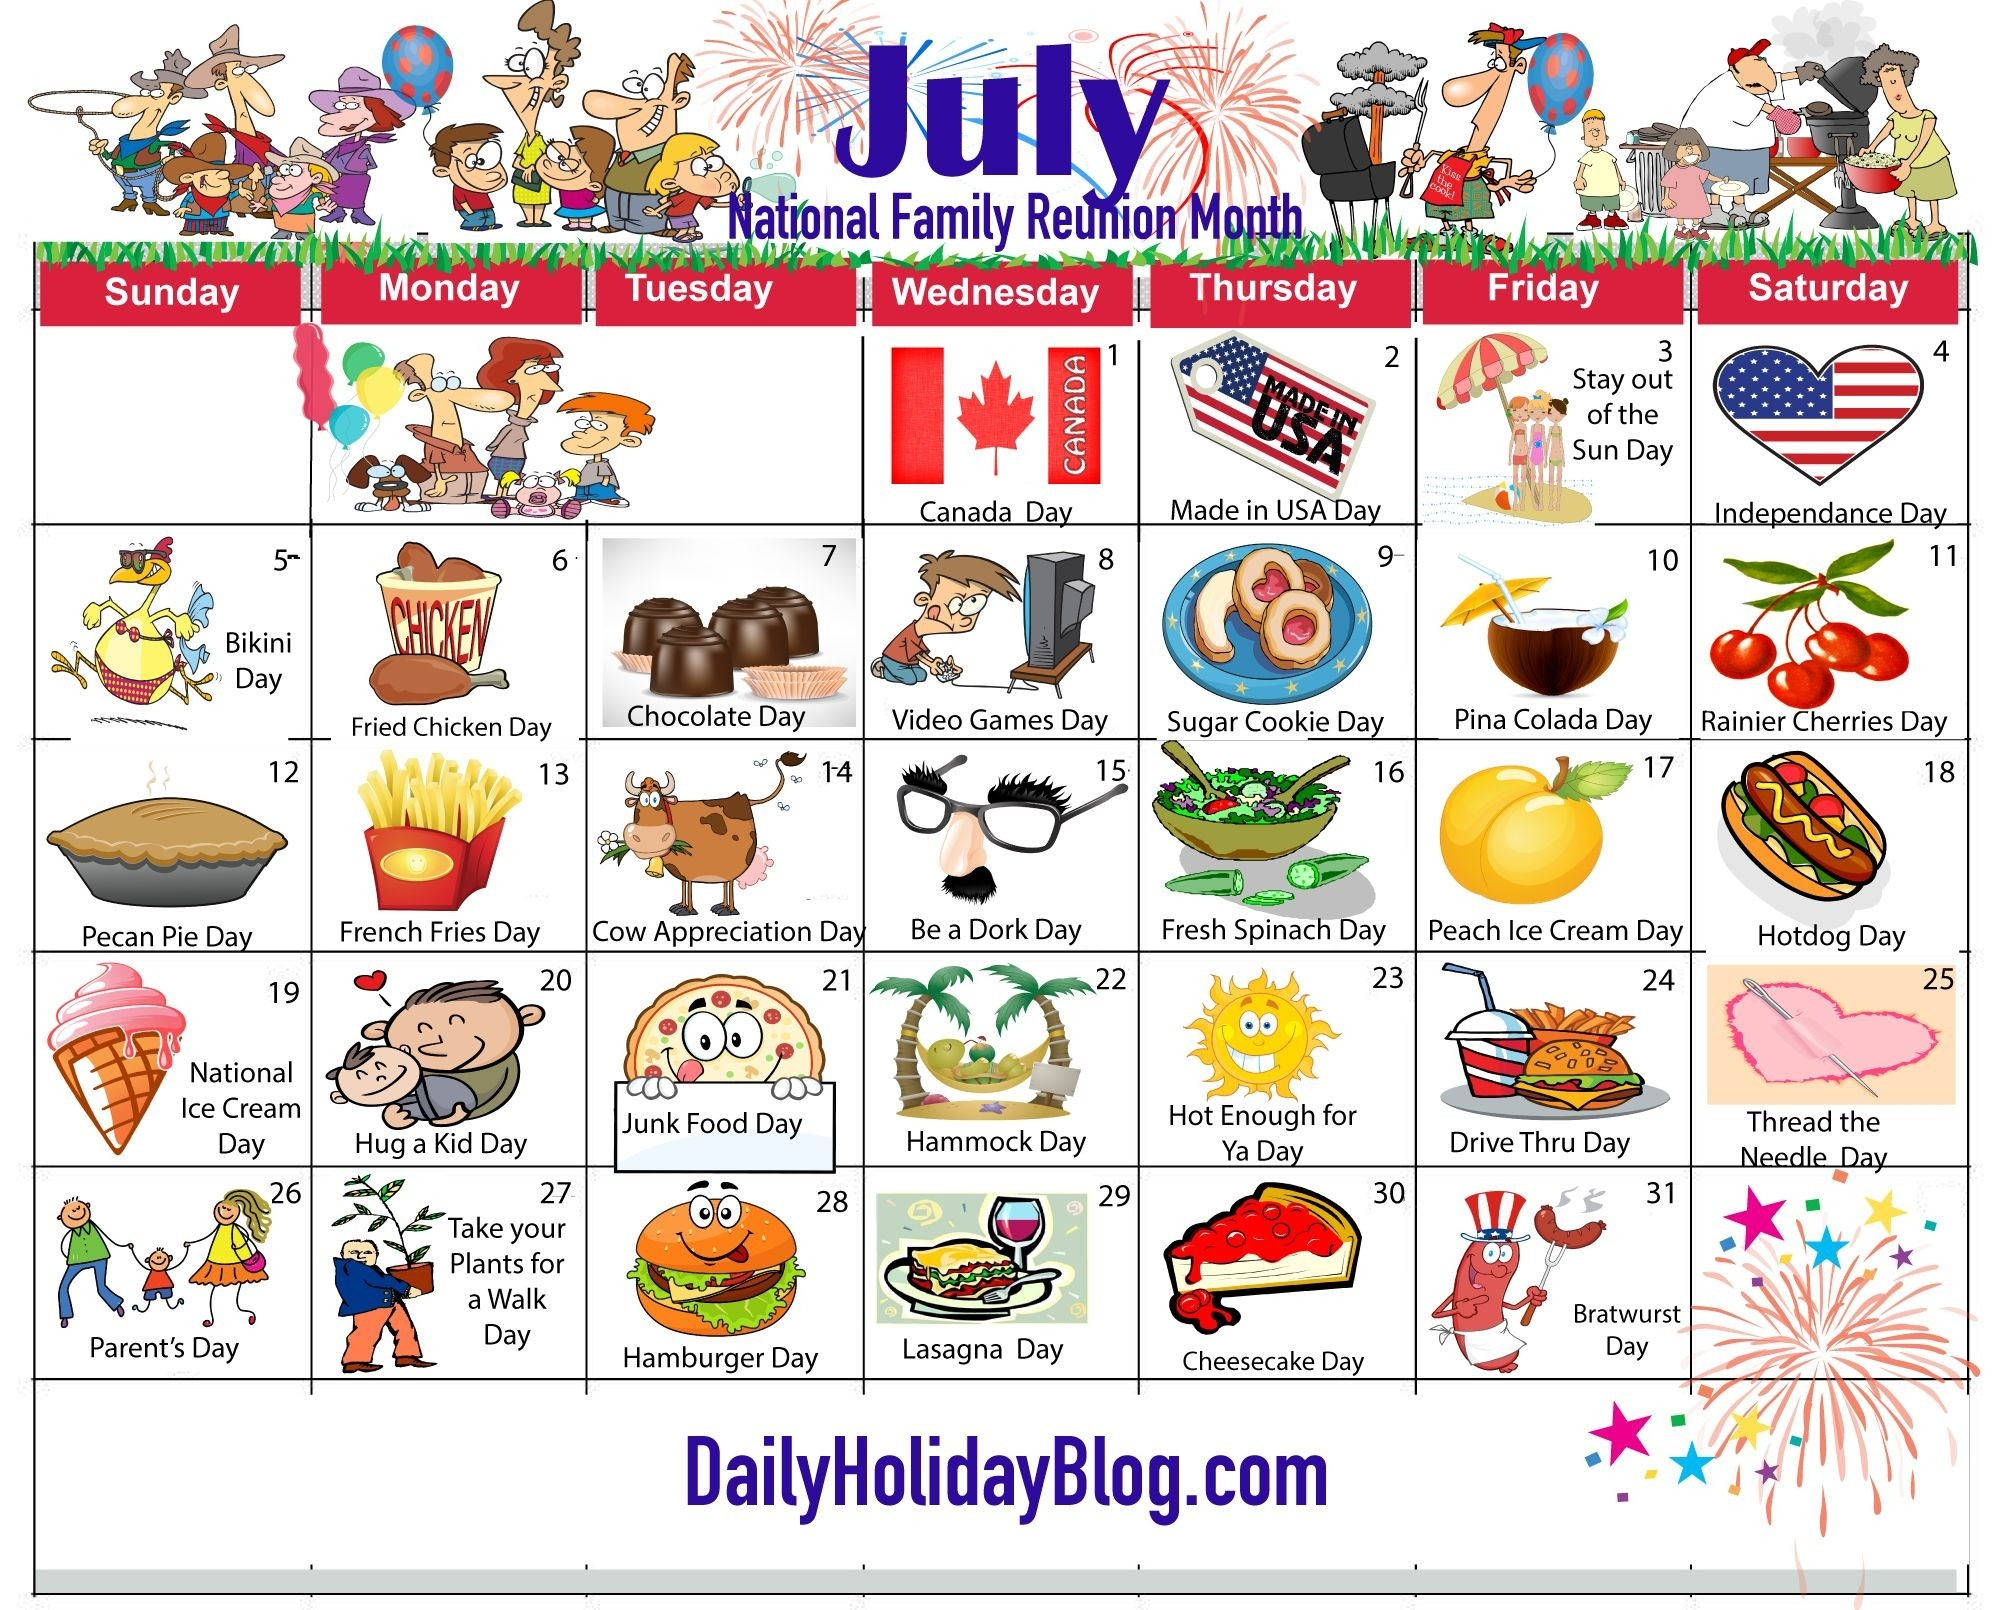 July Holiday Calendar 2015 | National Holiday Calendar-National Food Day Monthly Calendar